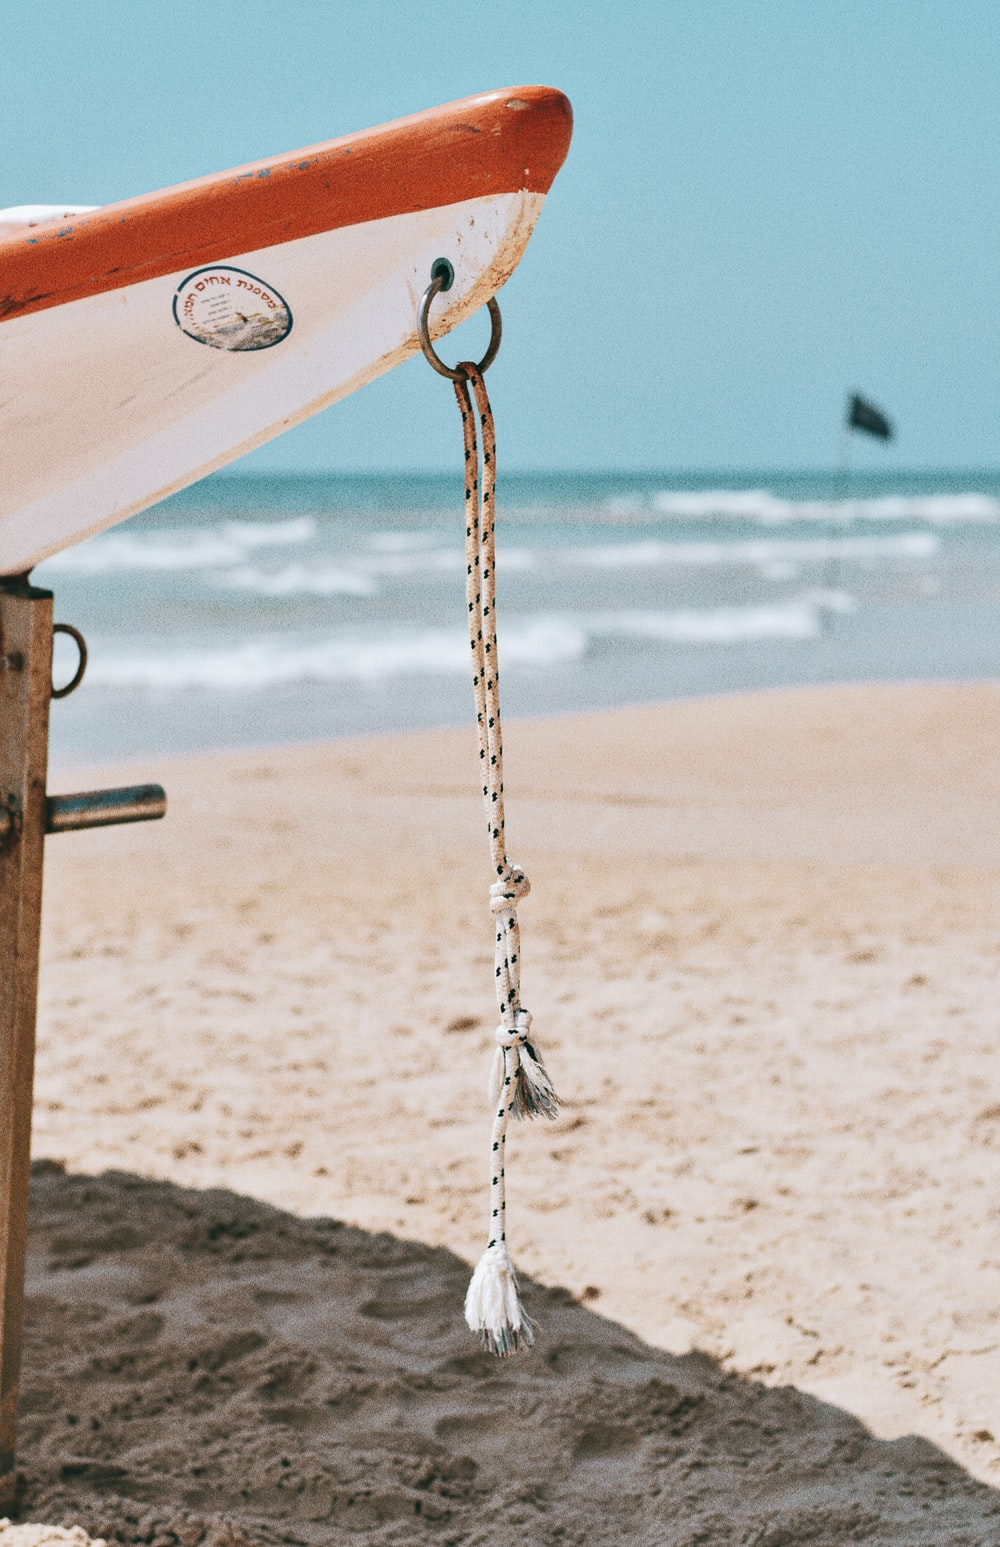 brown metal chain on beach during daytime